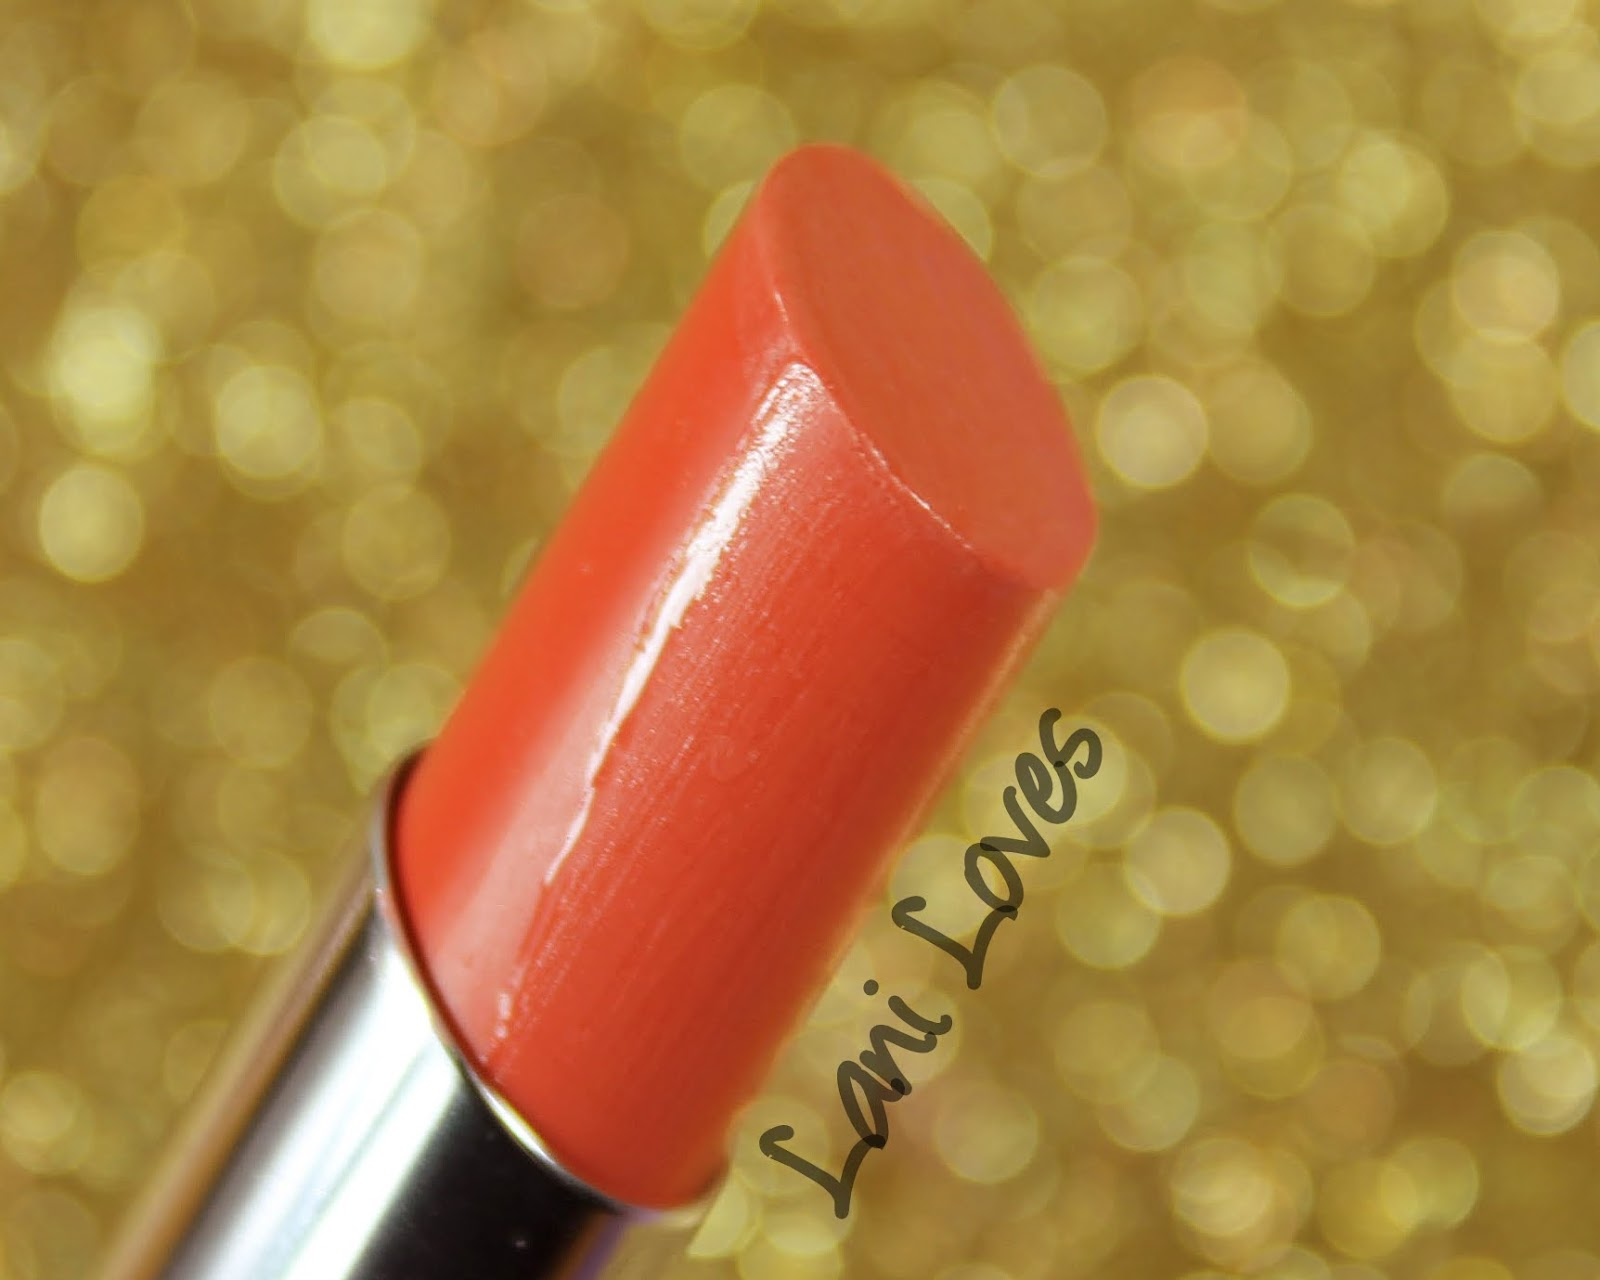 ZA Plumper Lips - 09 Sunset Glow lipstick swatches & review